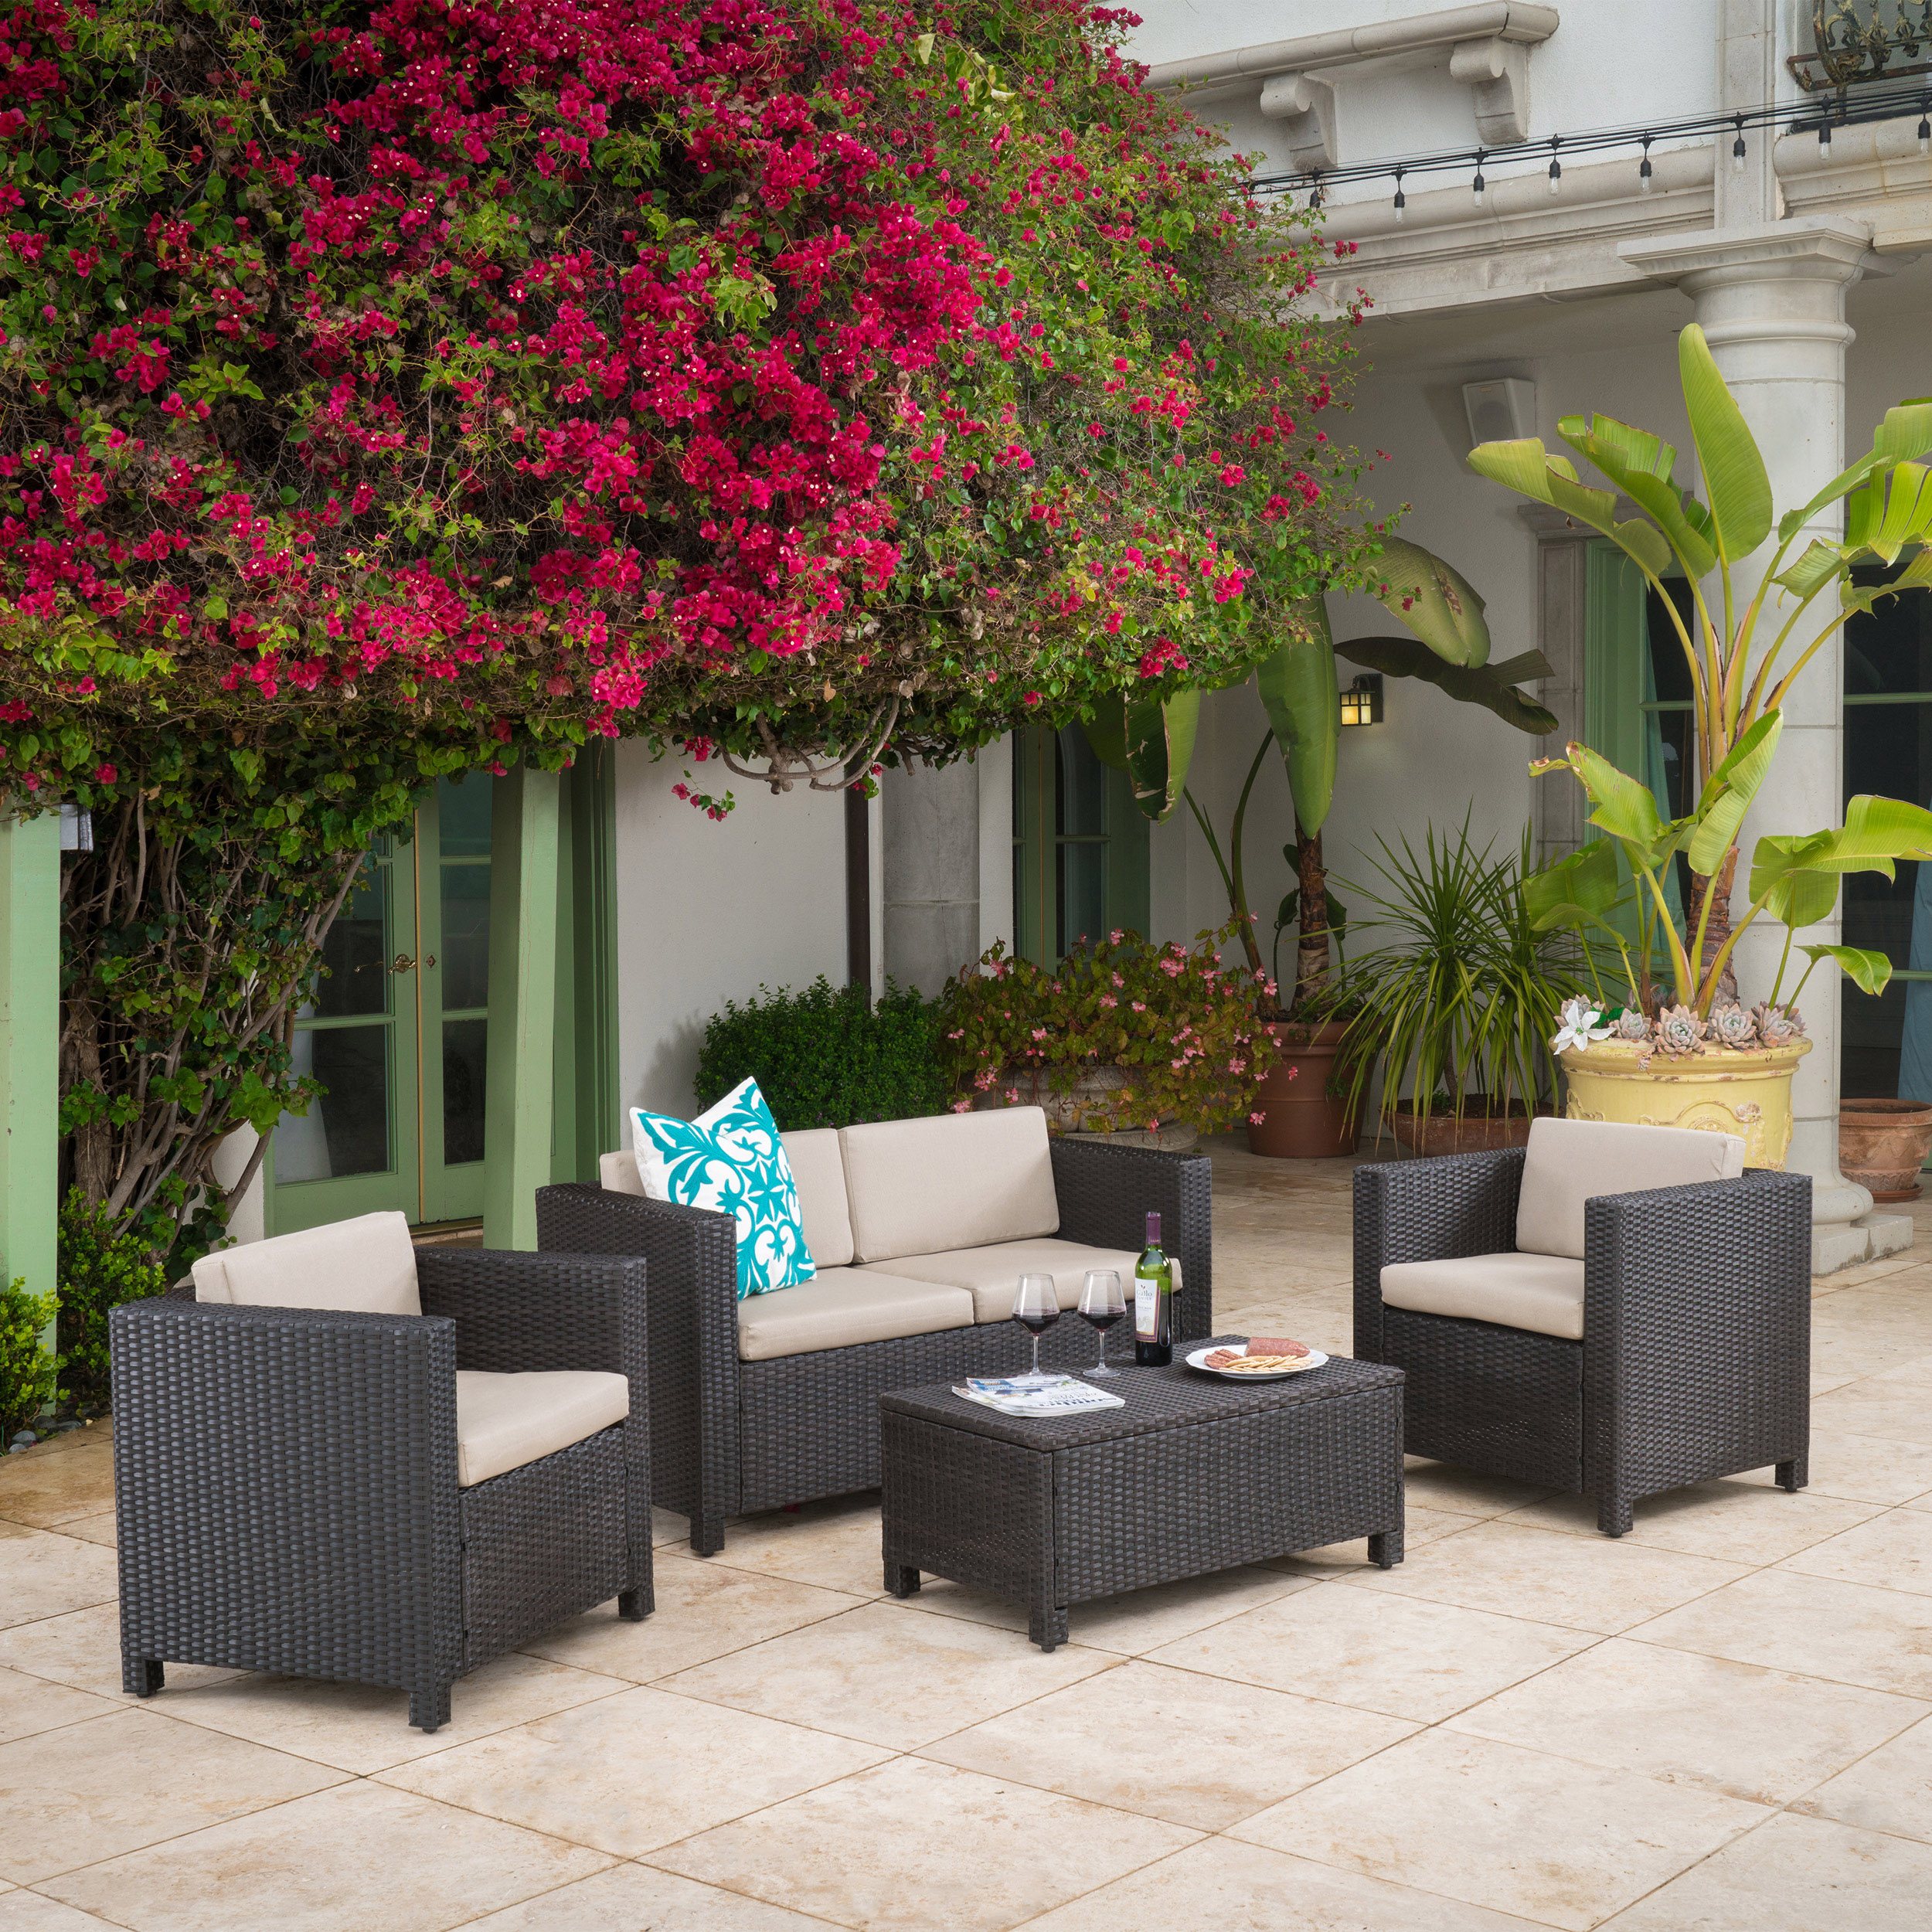 Raleigh Outdoor Wicker 4 piece Sofa Set, Multiple Colors by GDF Studio